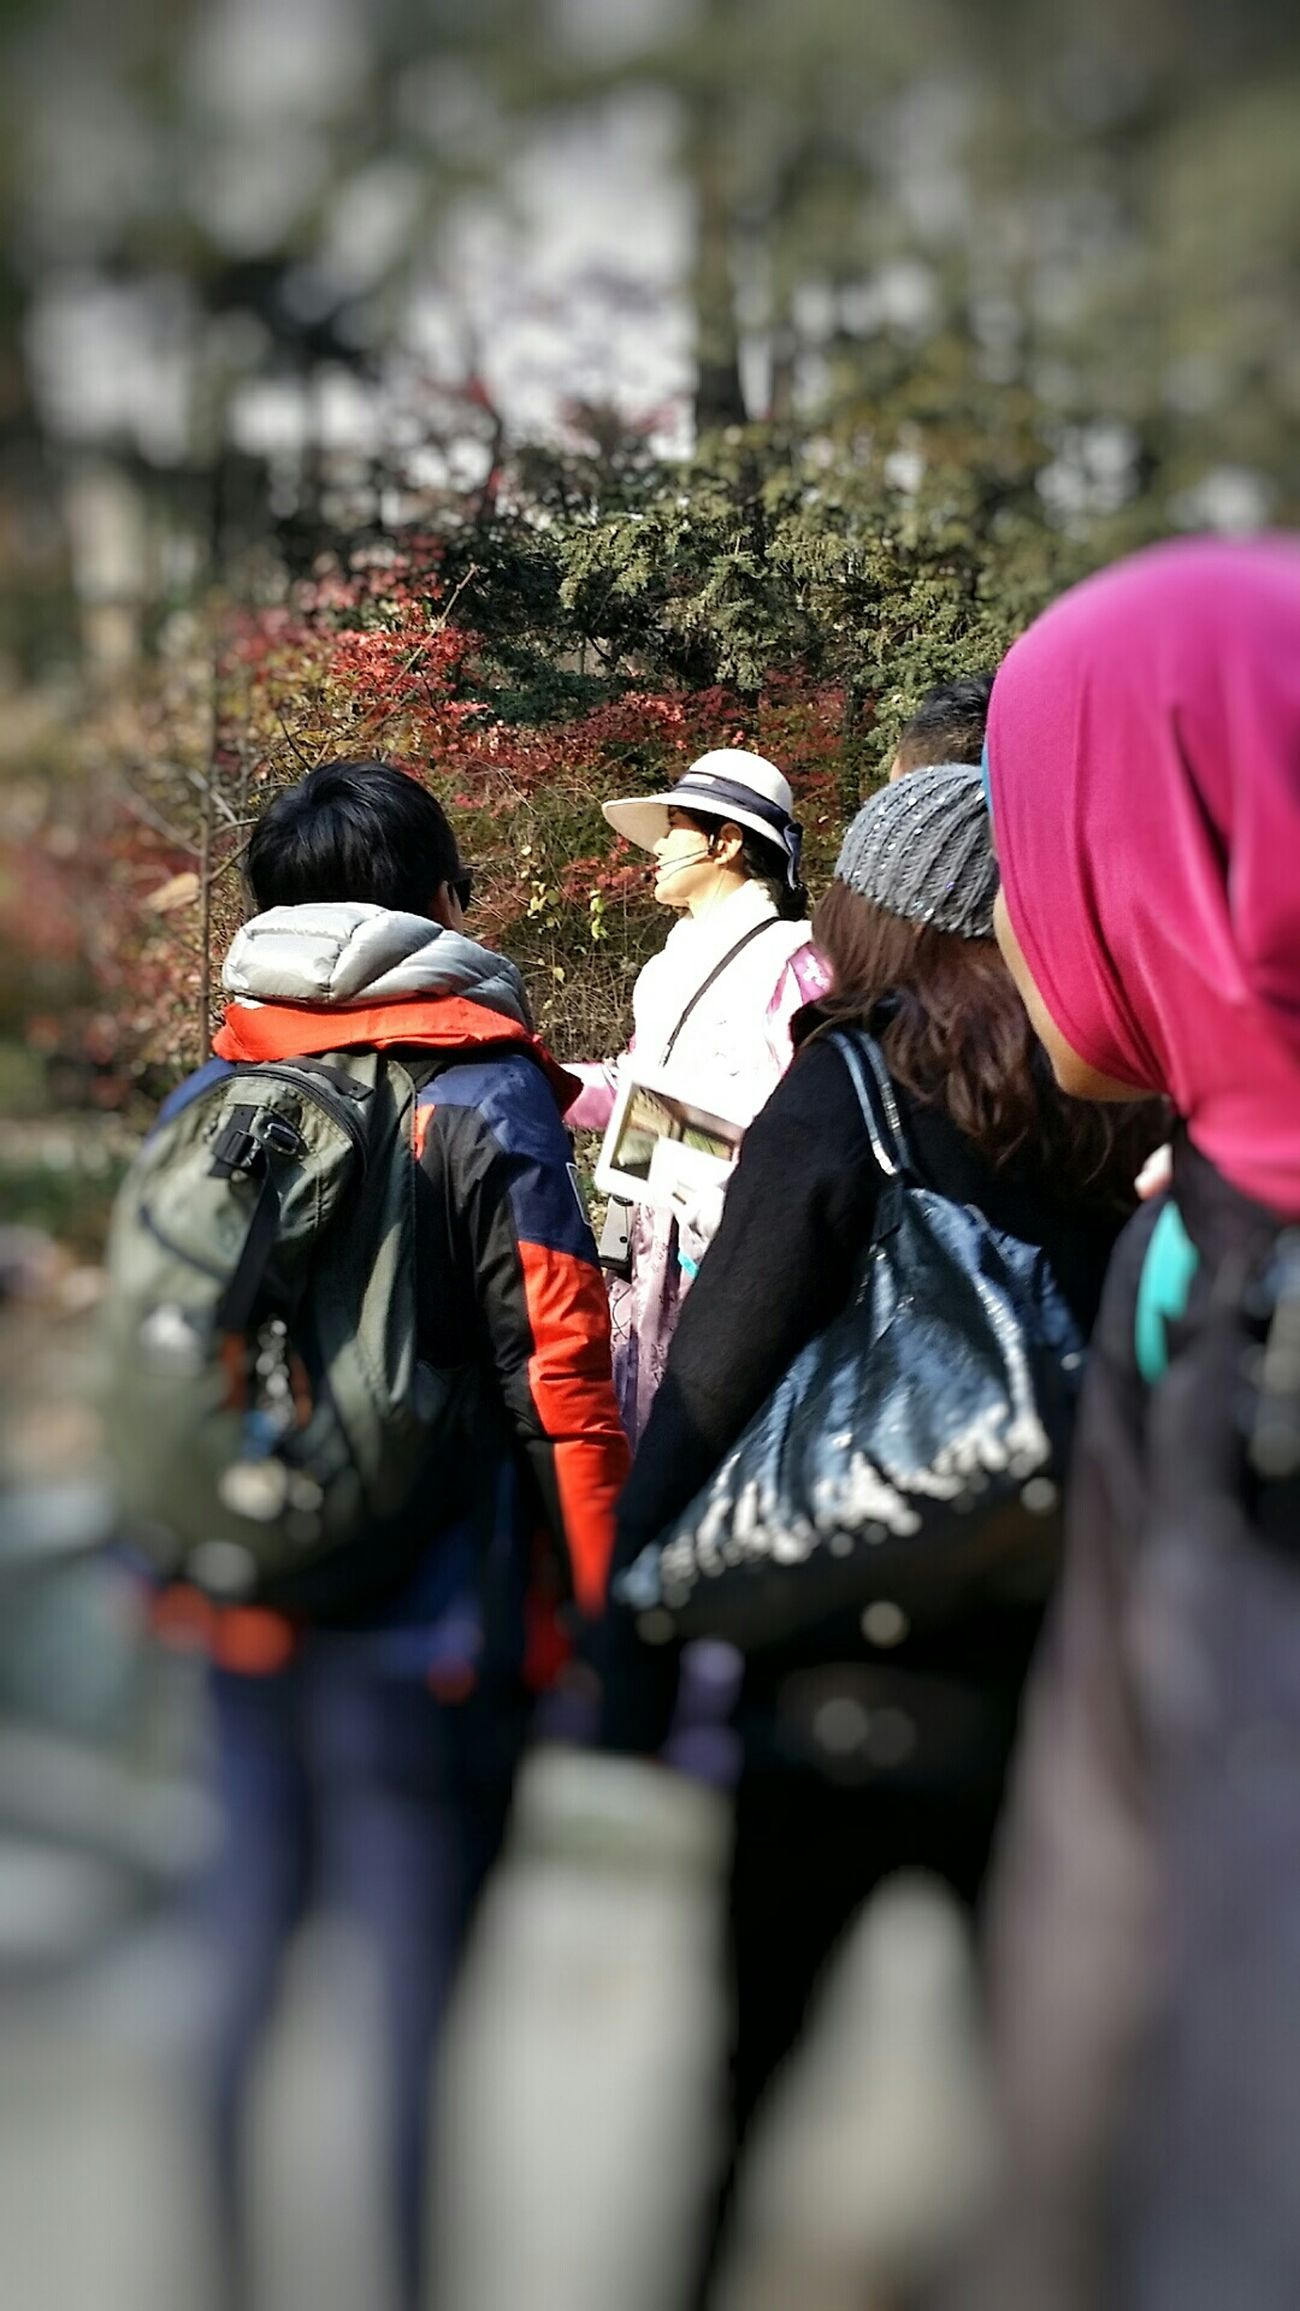 Guide Tour Secret Garden Changdeokgung Palace Seoul Beautifulkorea Autumn2014 Streetphotography Travel Photography